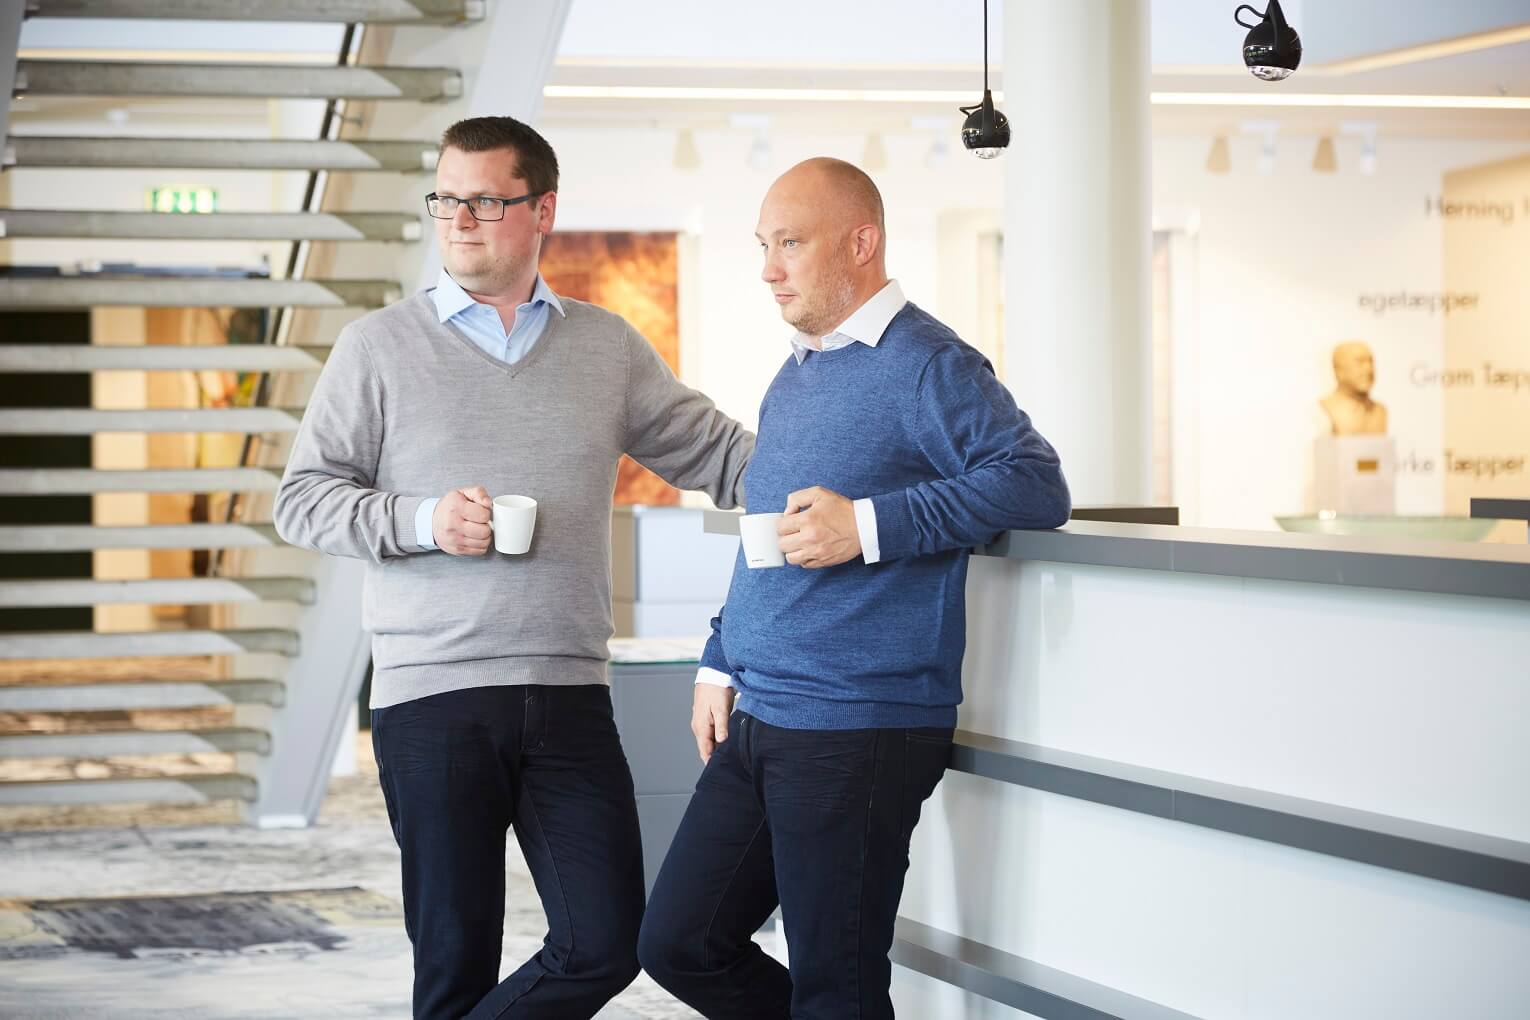 2 Men - Knitted Jumpers & Shirts - Office